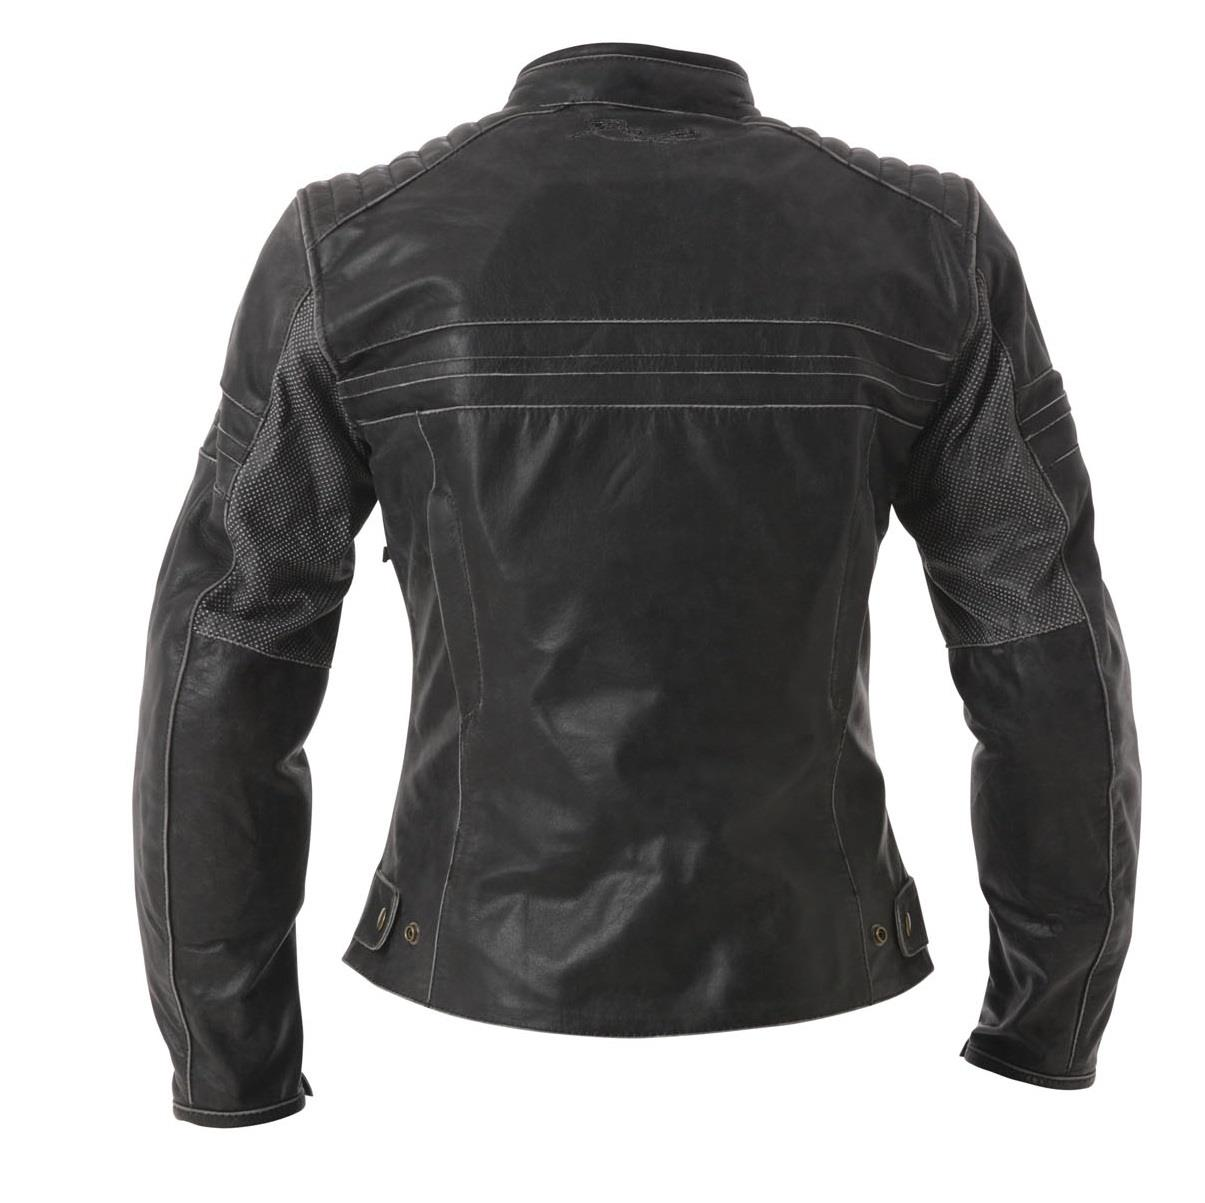 (CLEARANCE) RST Roadster Classic Women's Leather Jacket ...